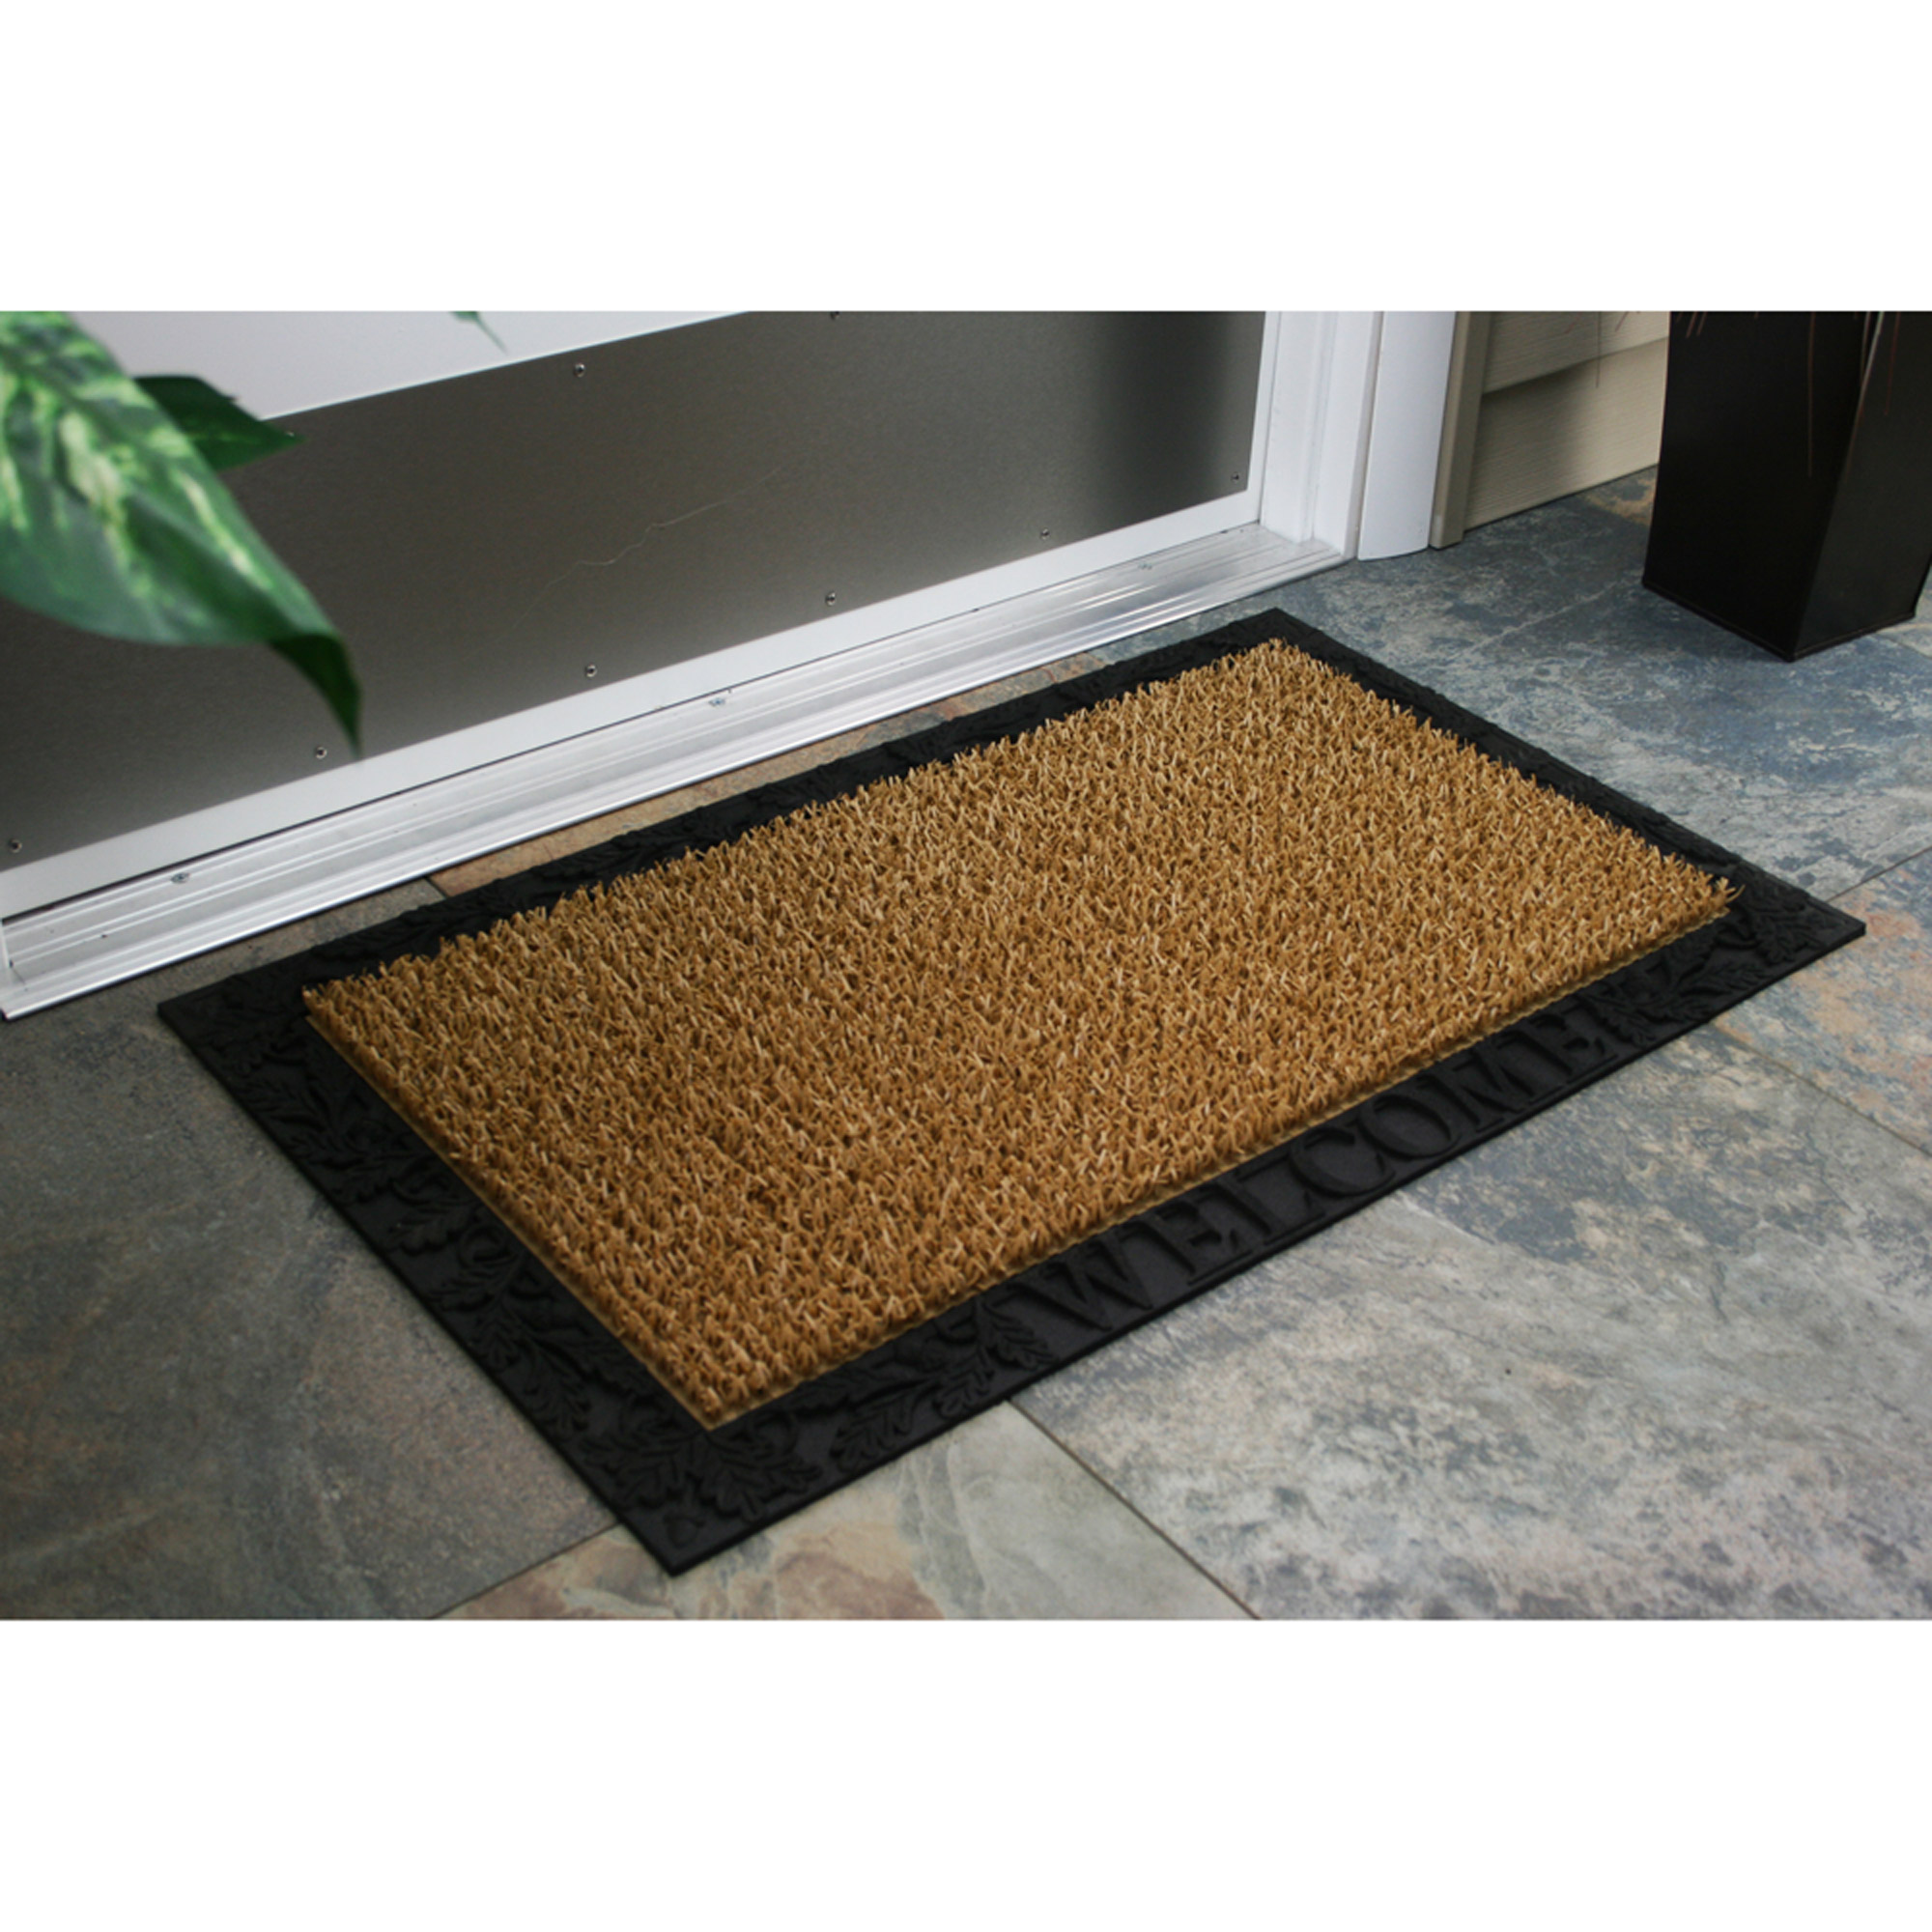 "AstroTurf Scraper Door Mat, Acorn and Oak Leaf Welcome with Rubber Border, 18"" x 30"", Cocoa"